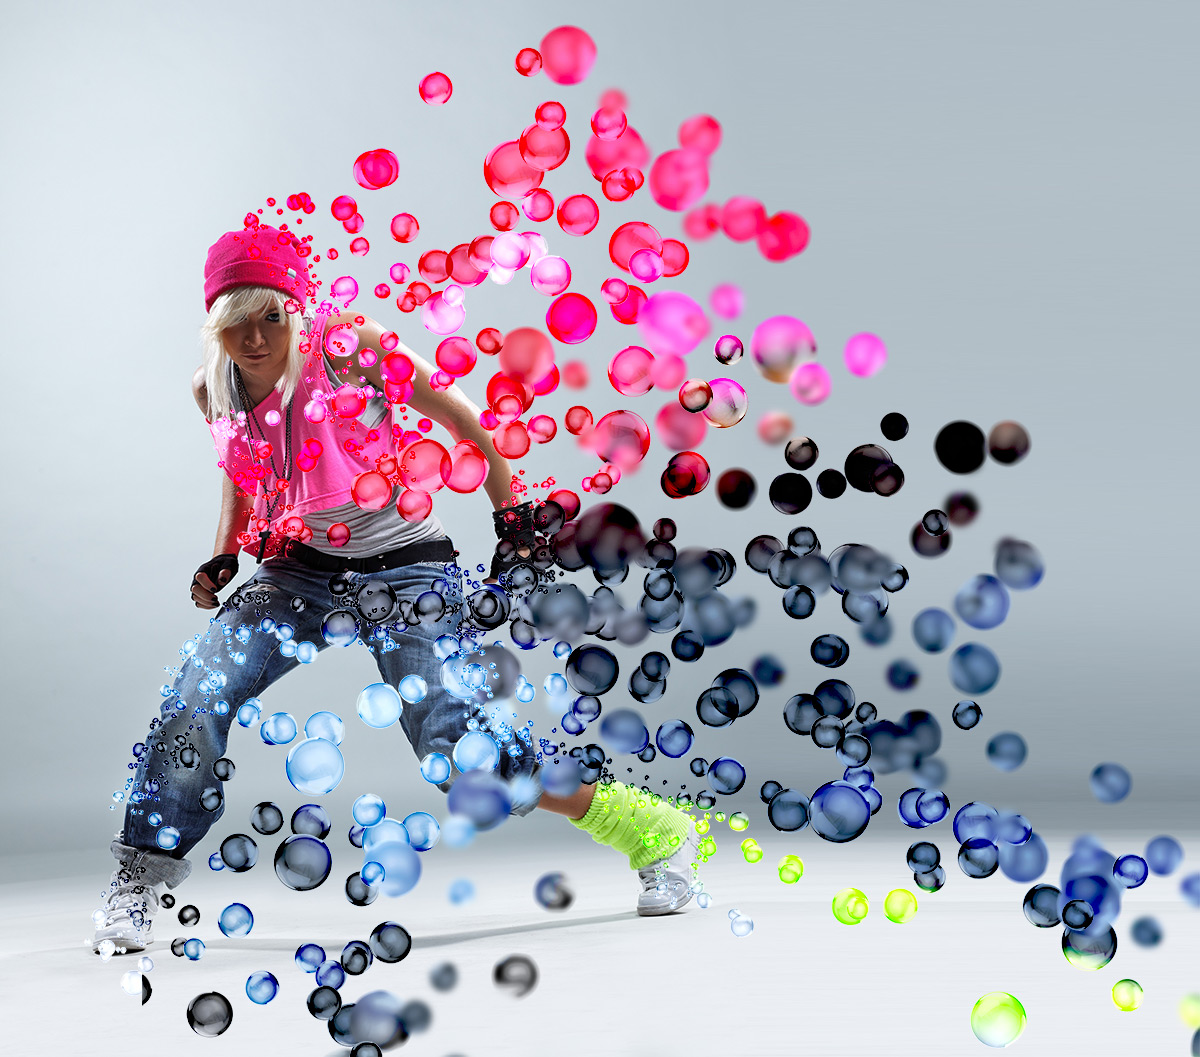 Free Photoshop Actions 3d Bubbles